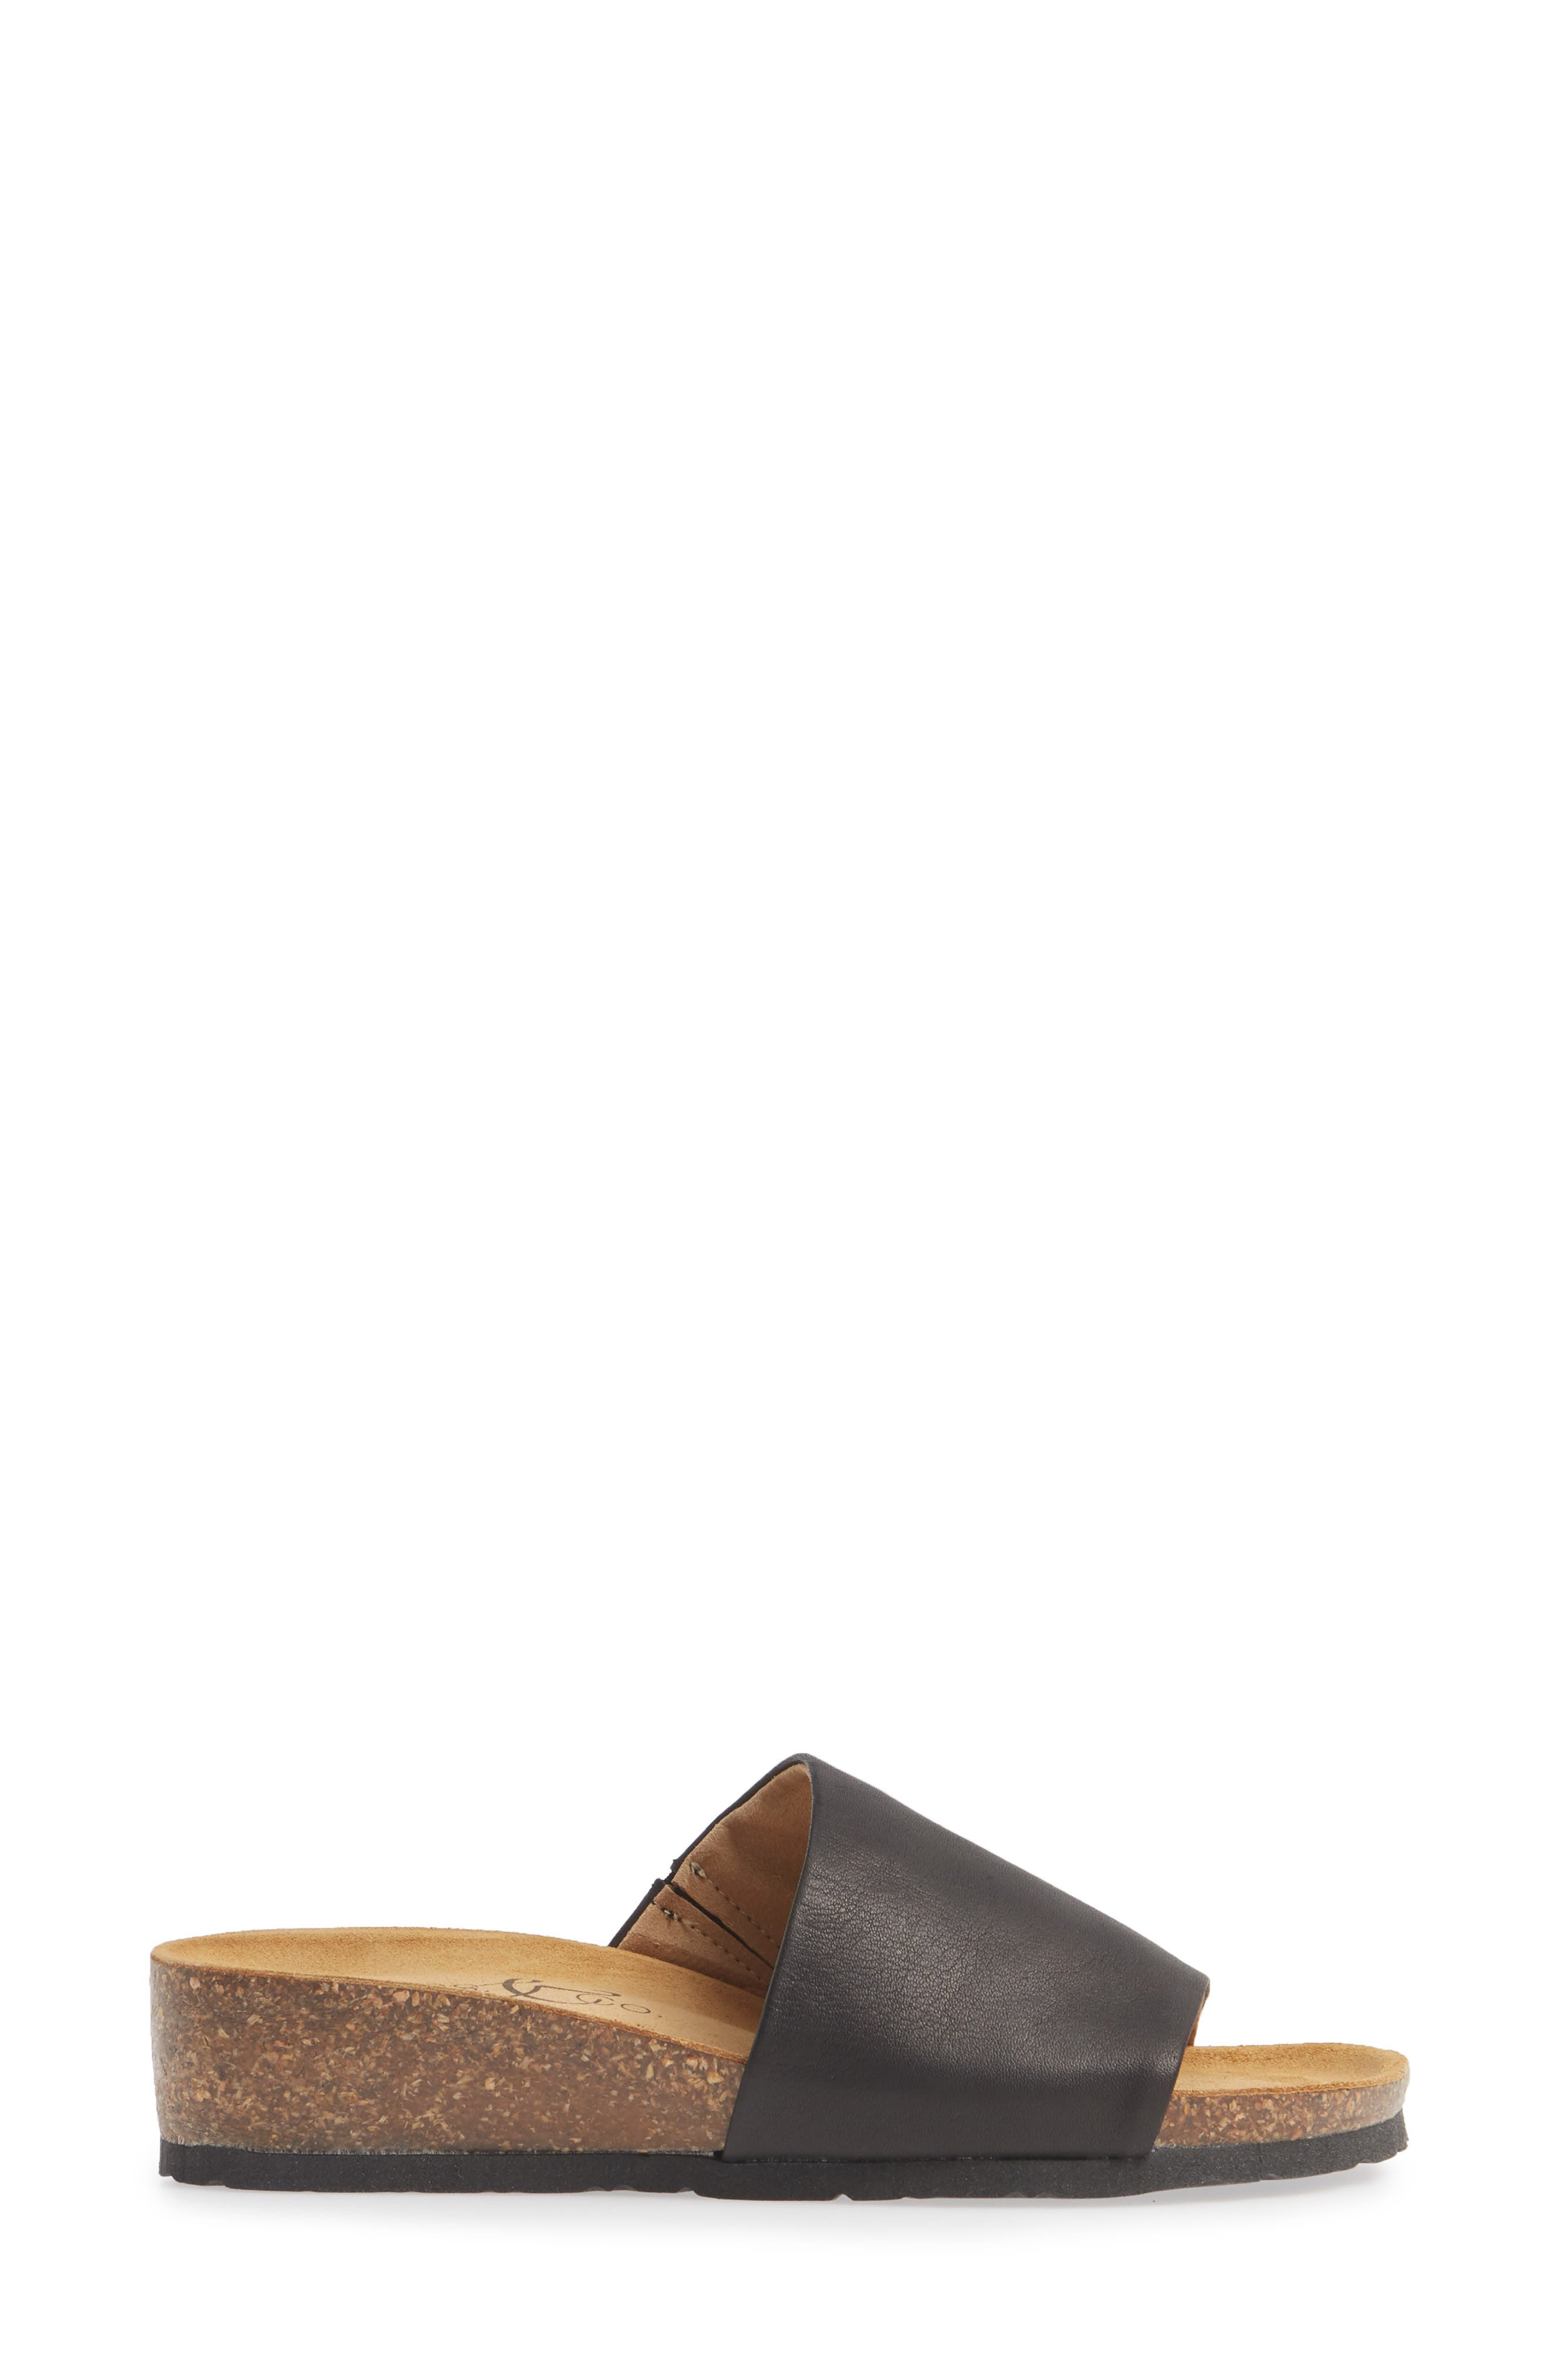 BOS. & CO., Lux Slide Sandal, Alternate thumbnail 3, color, BLACK NAPPA LEATHER